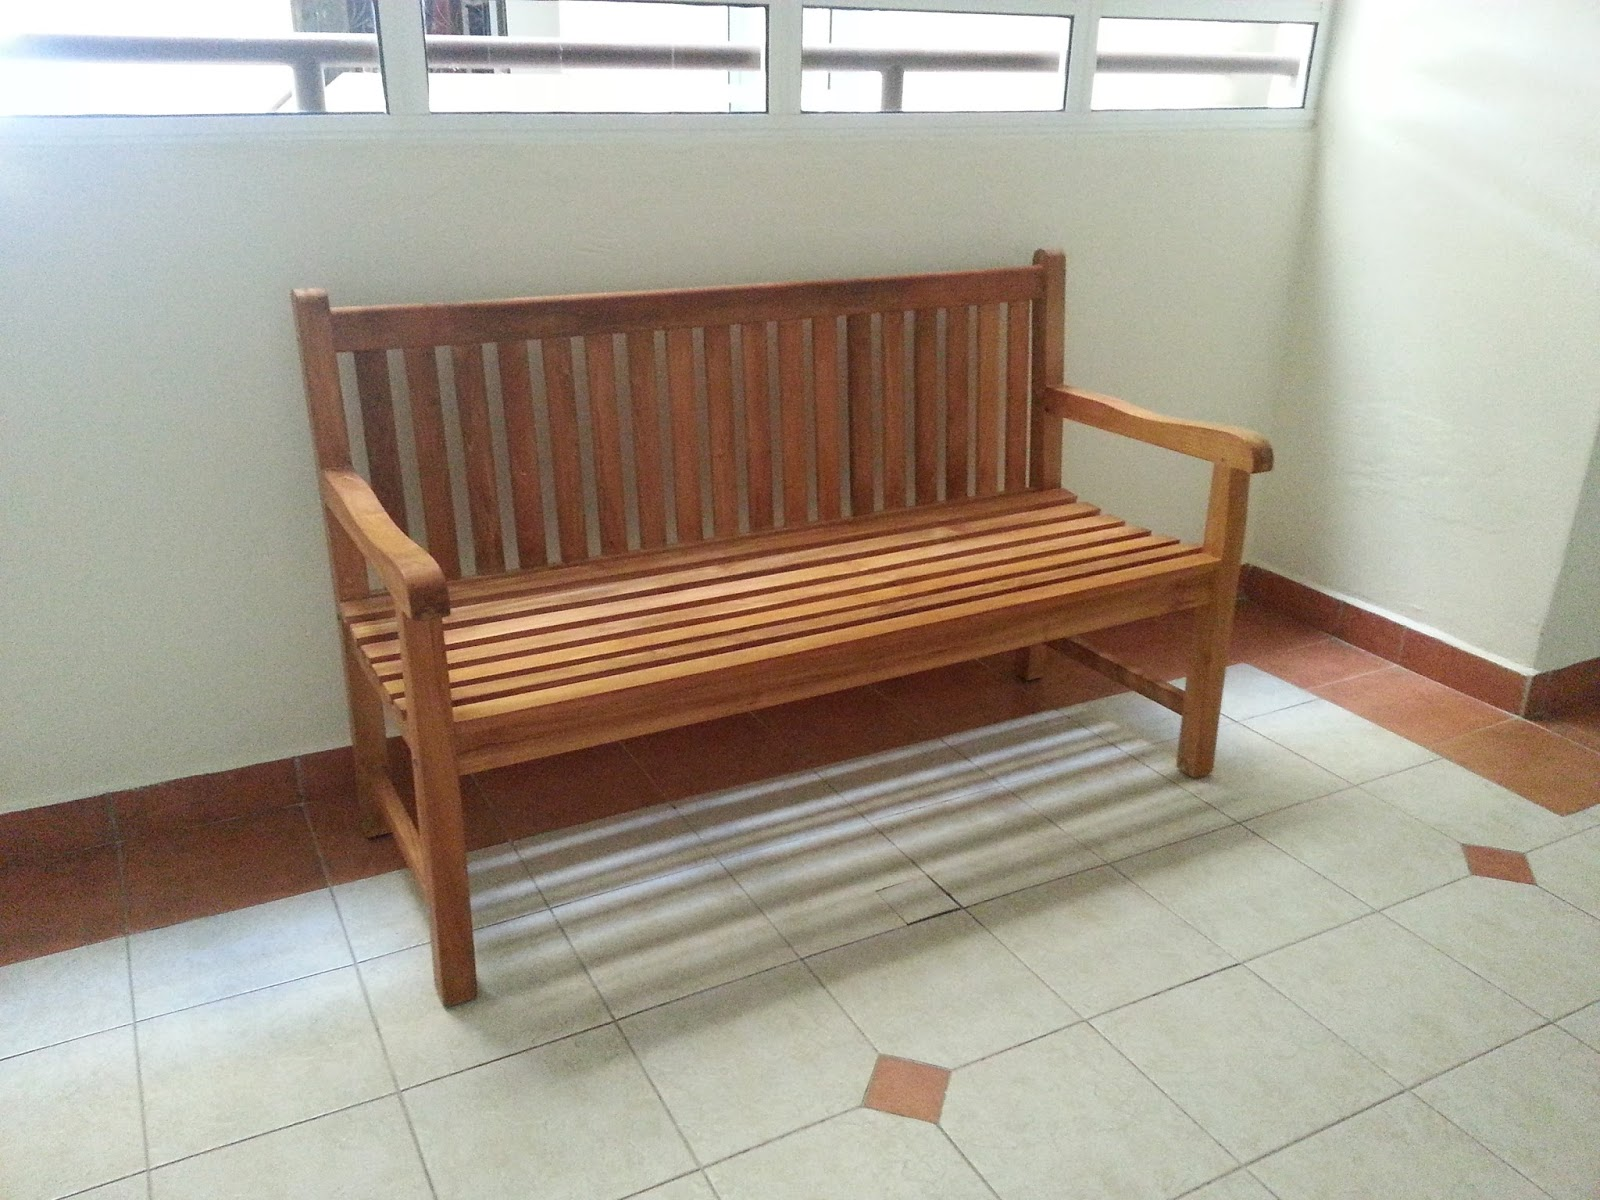 Teak Wood Home Furniture And Outdoor Wicker Garden Furniture Supplier In Malaysia Teak Wood